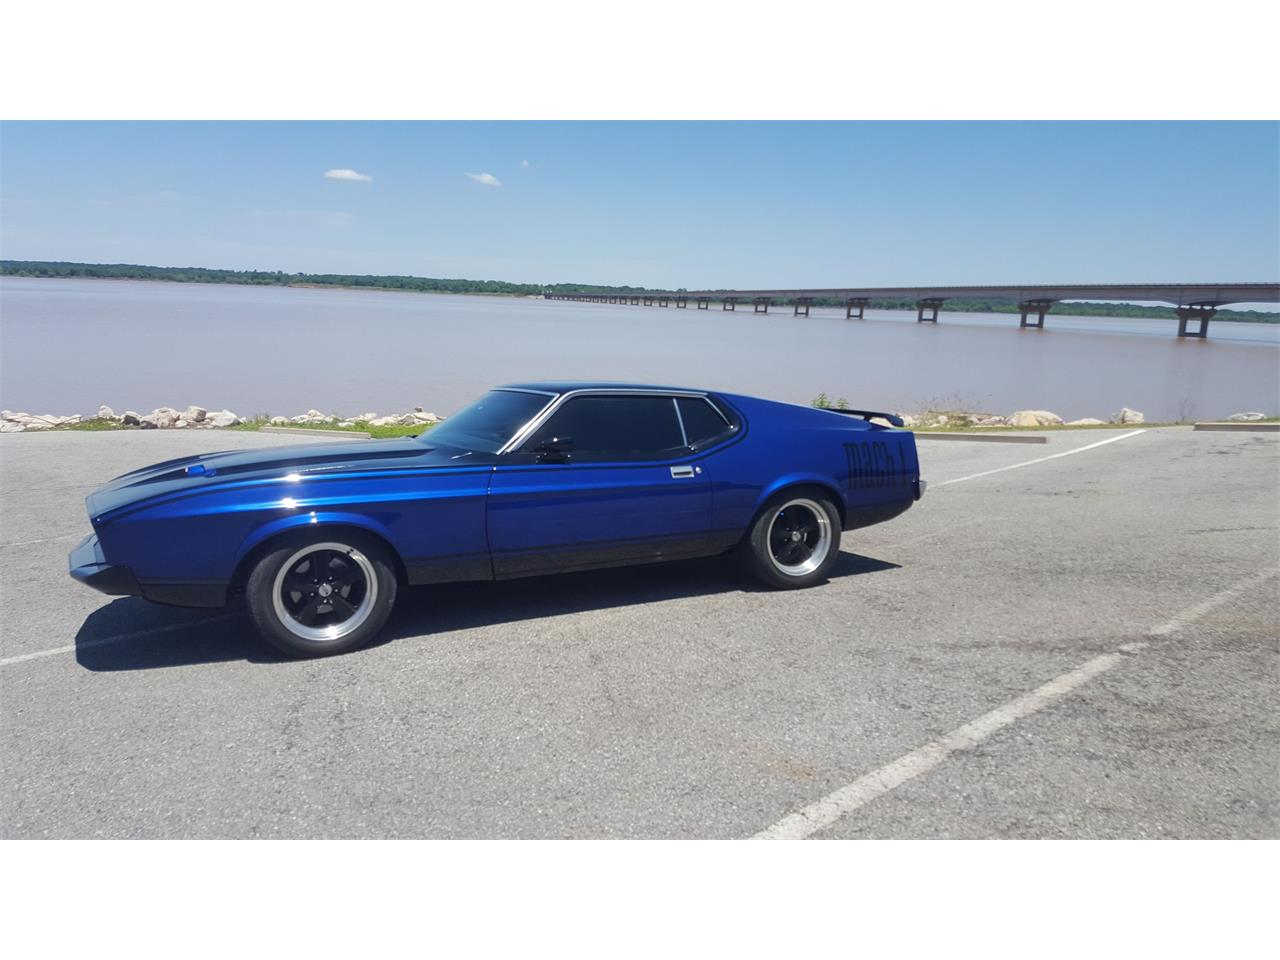 Large Picture of Classic '73 Mustang Mach 1 located in Texas - LBYV